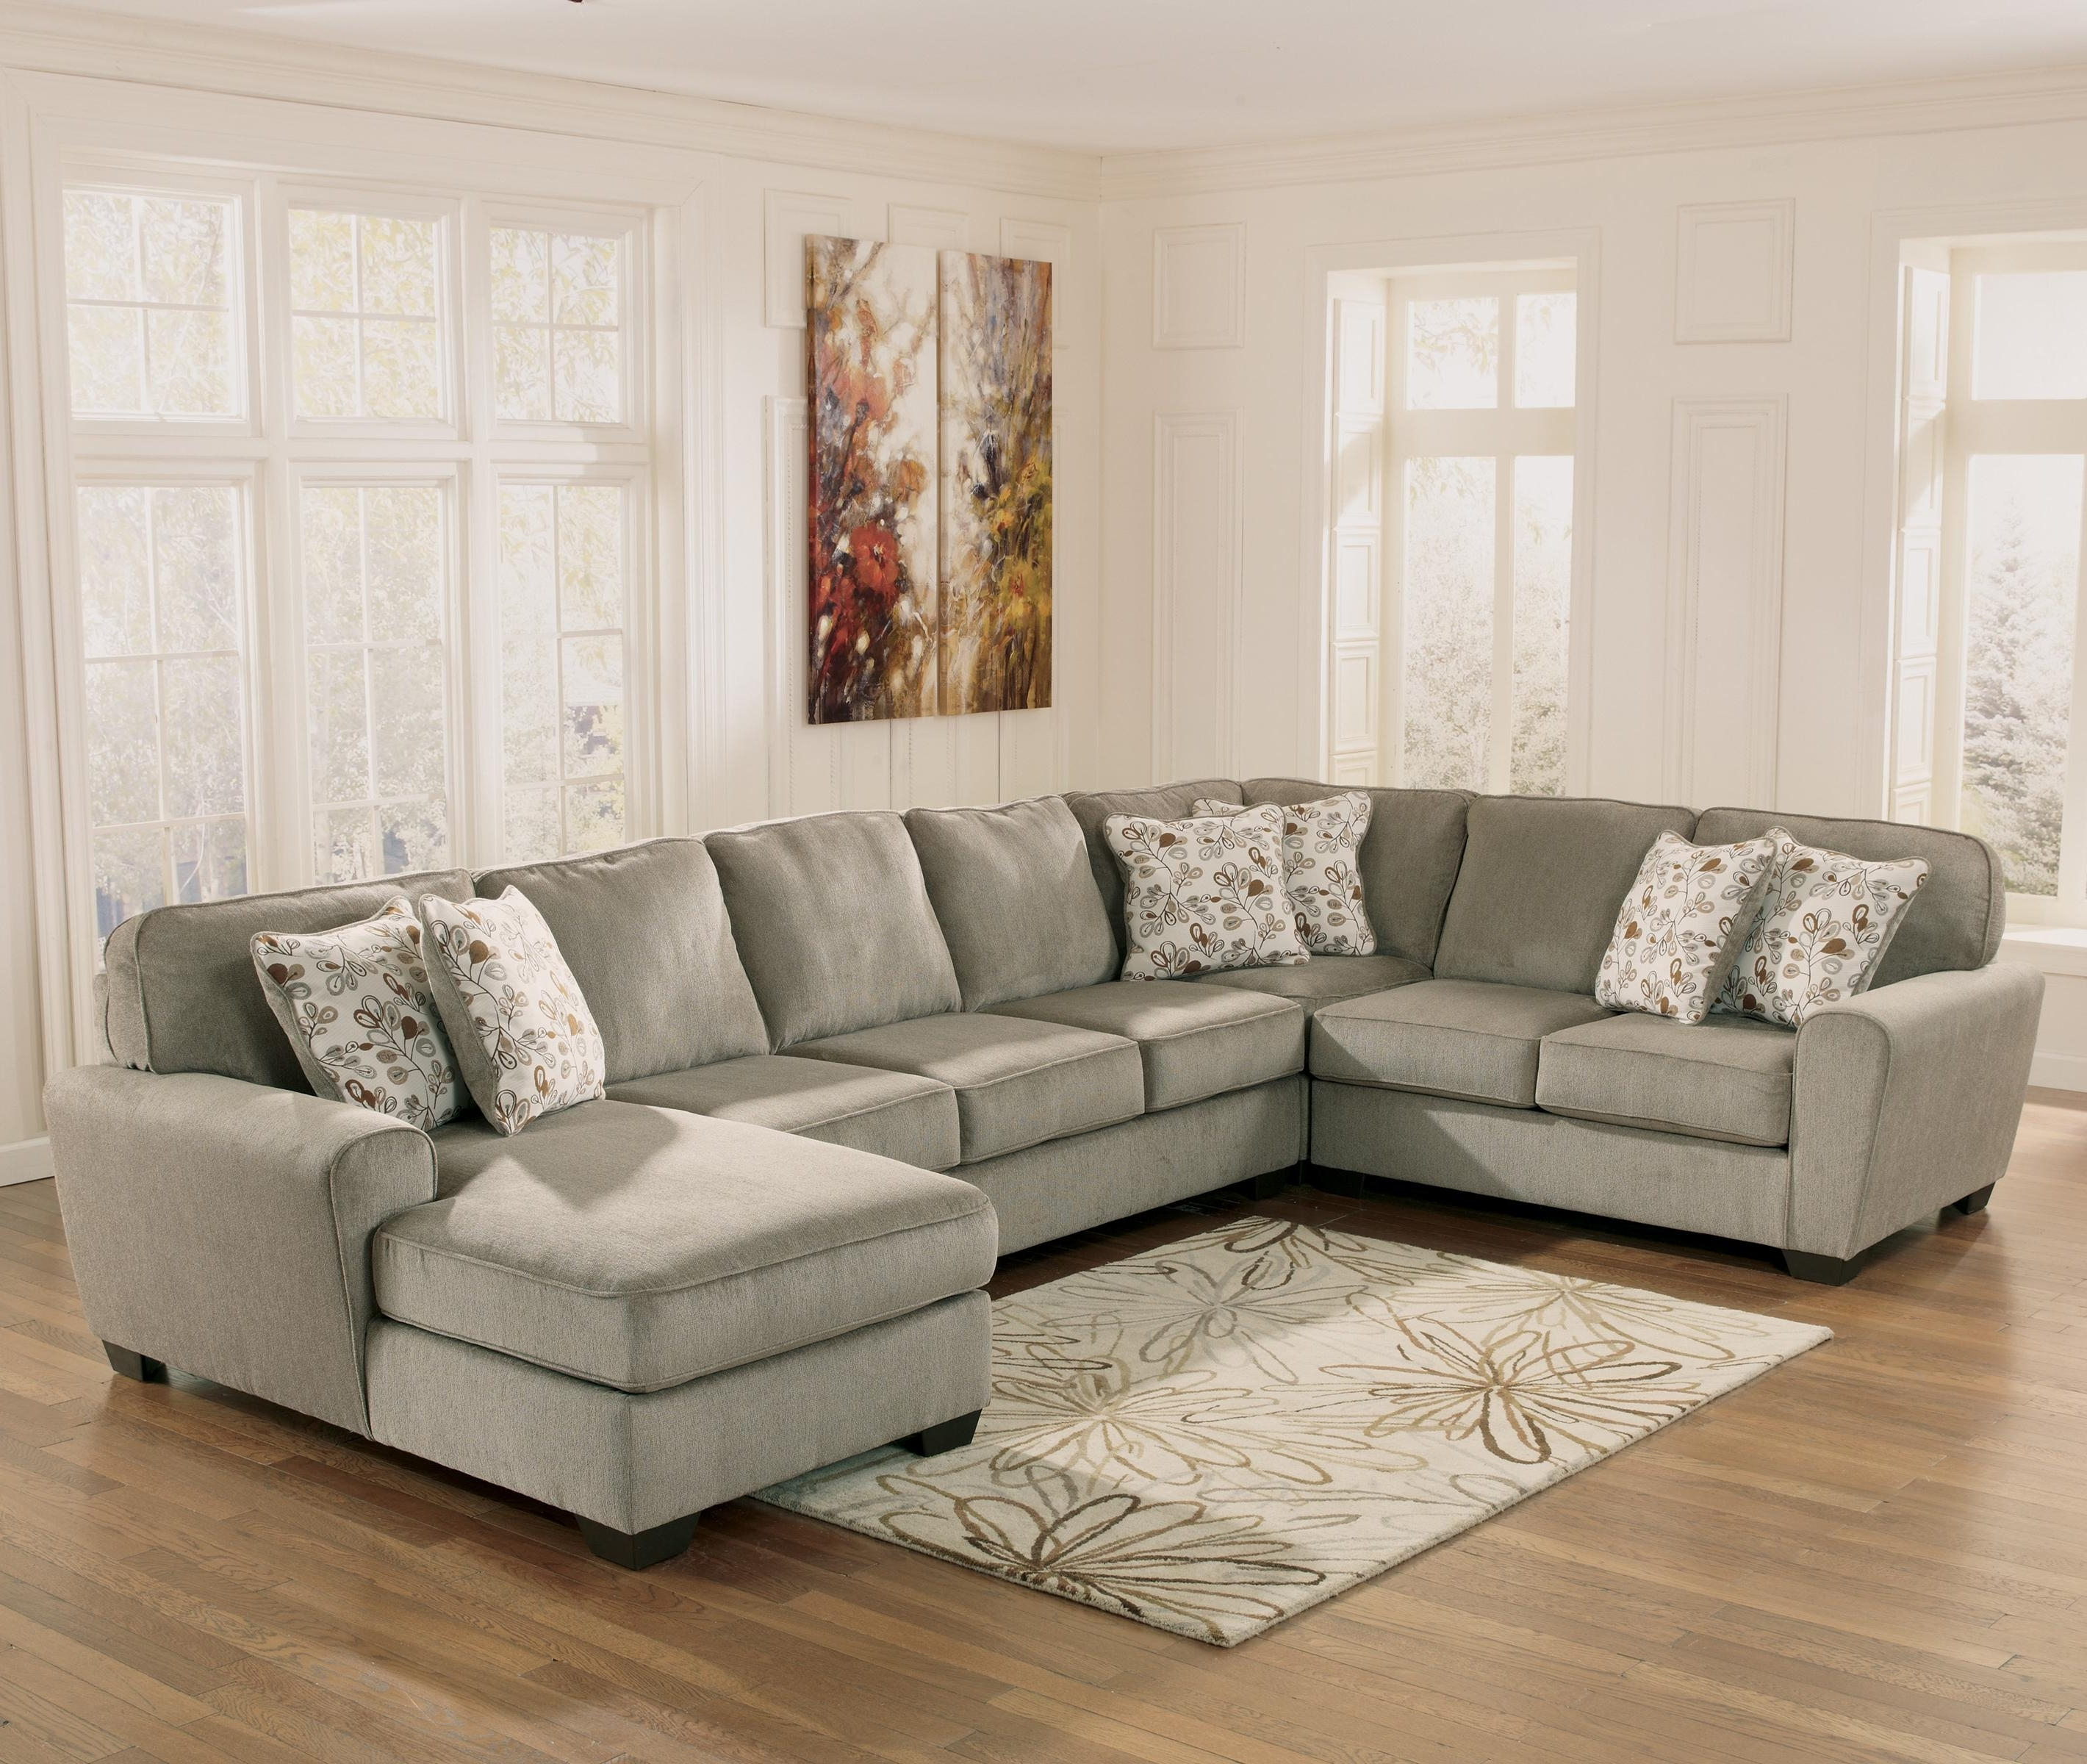 Ashley Furniture Chaise Sofas Inside Most Current Ashley Furniture Patola Park – Patina 4 Piece Sectional With Right (View 6 of 15)